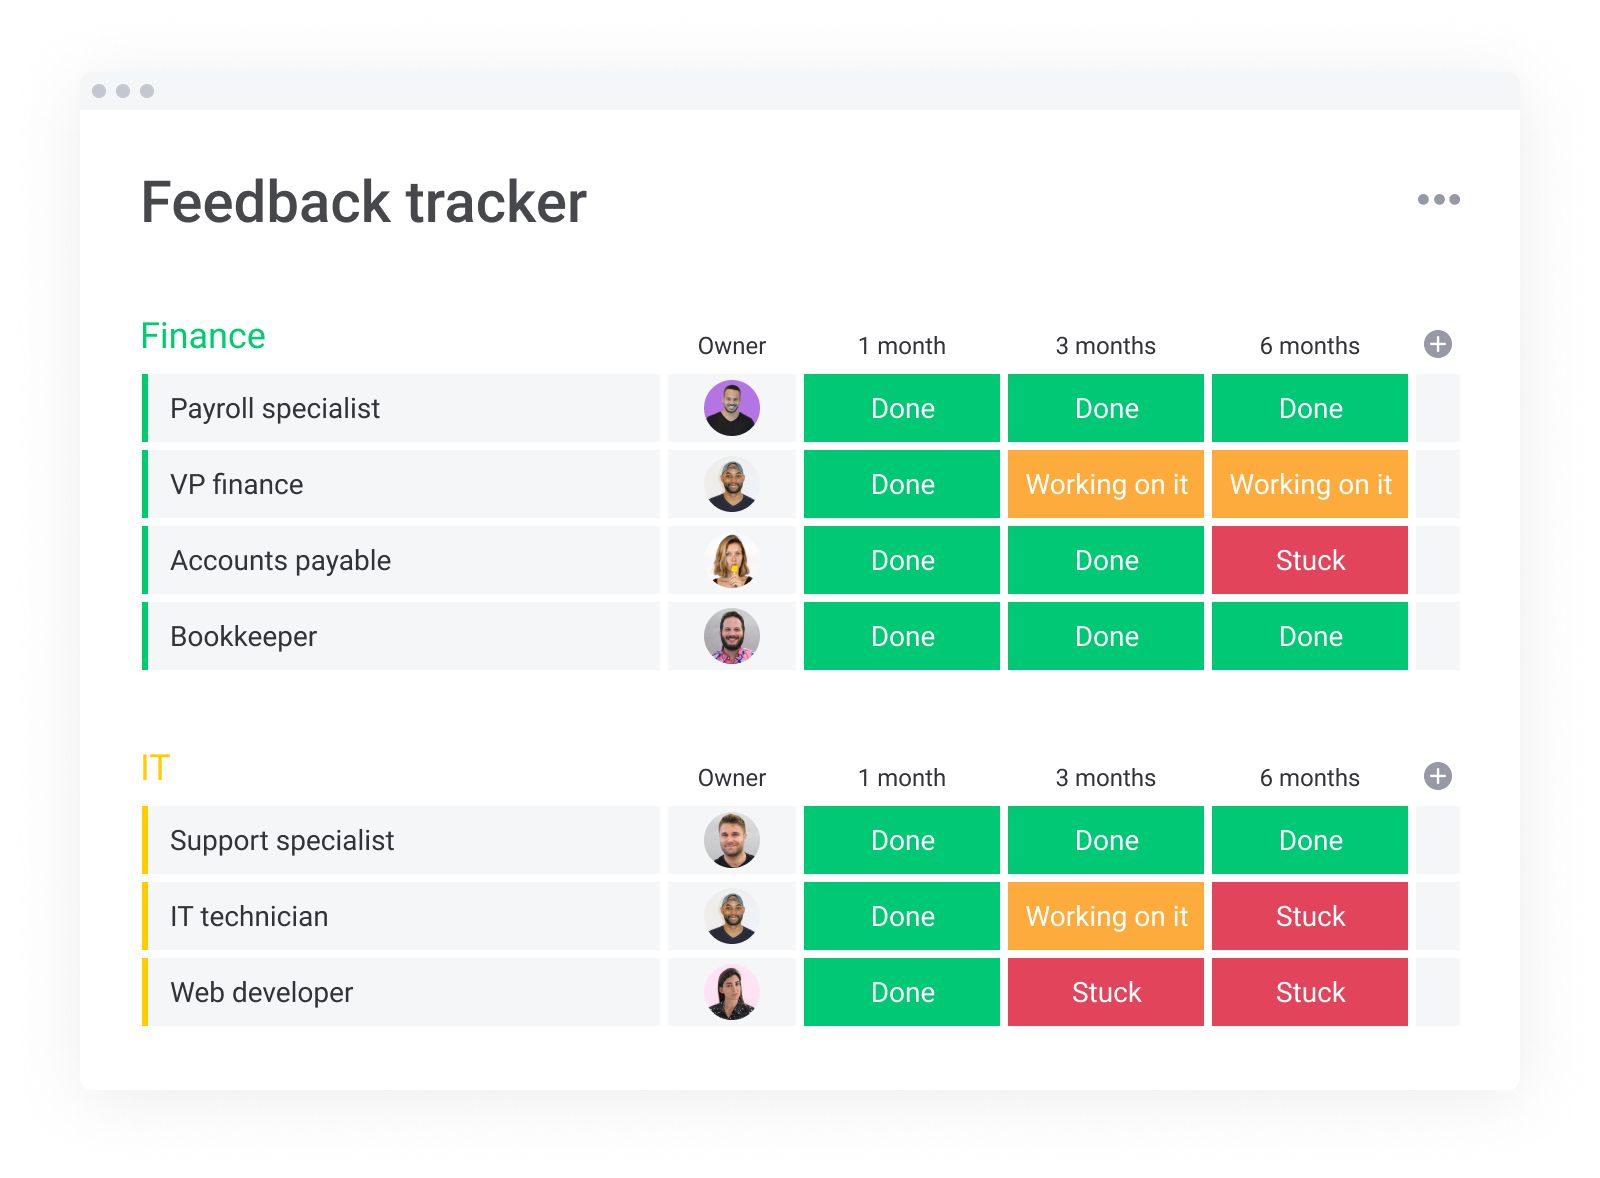 monday.com's example of a feedback tracker